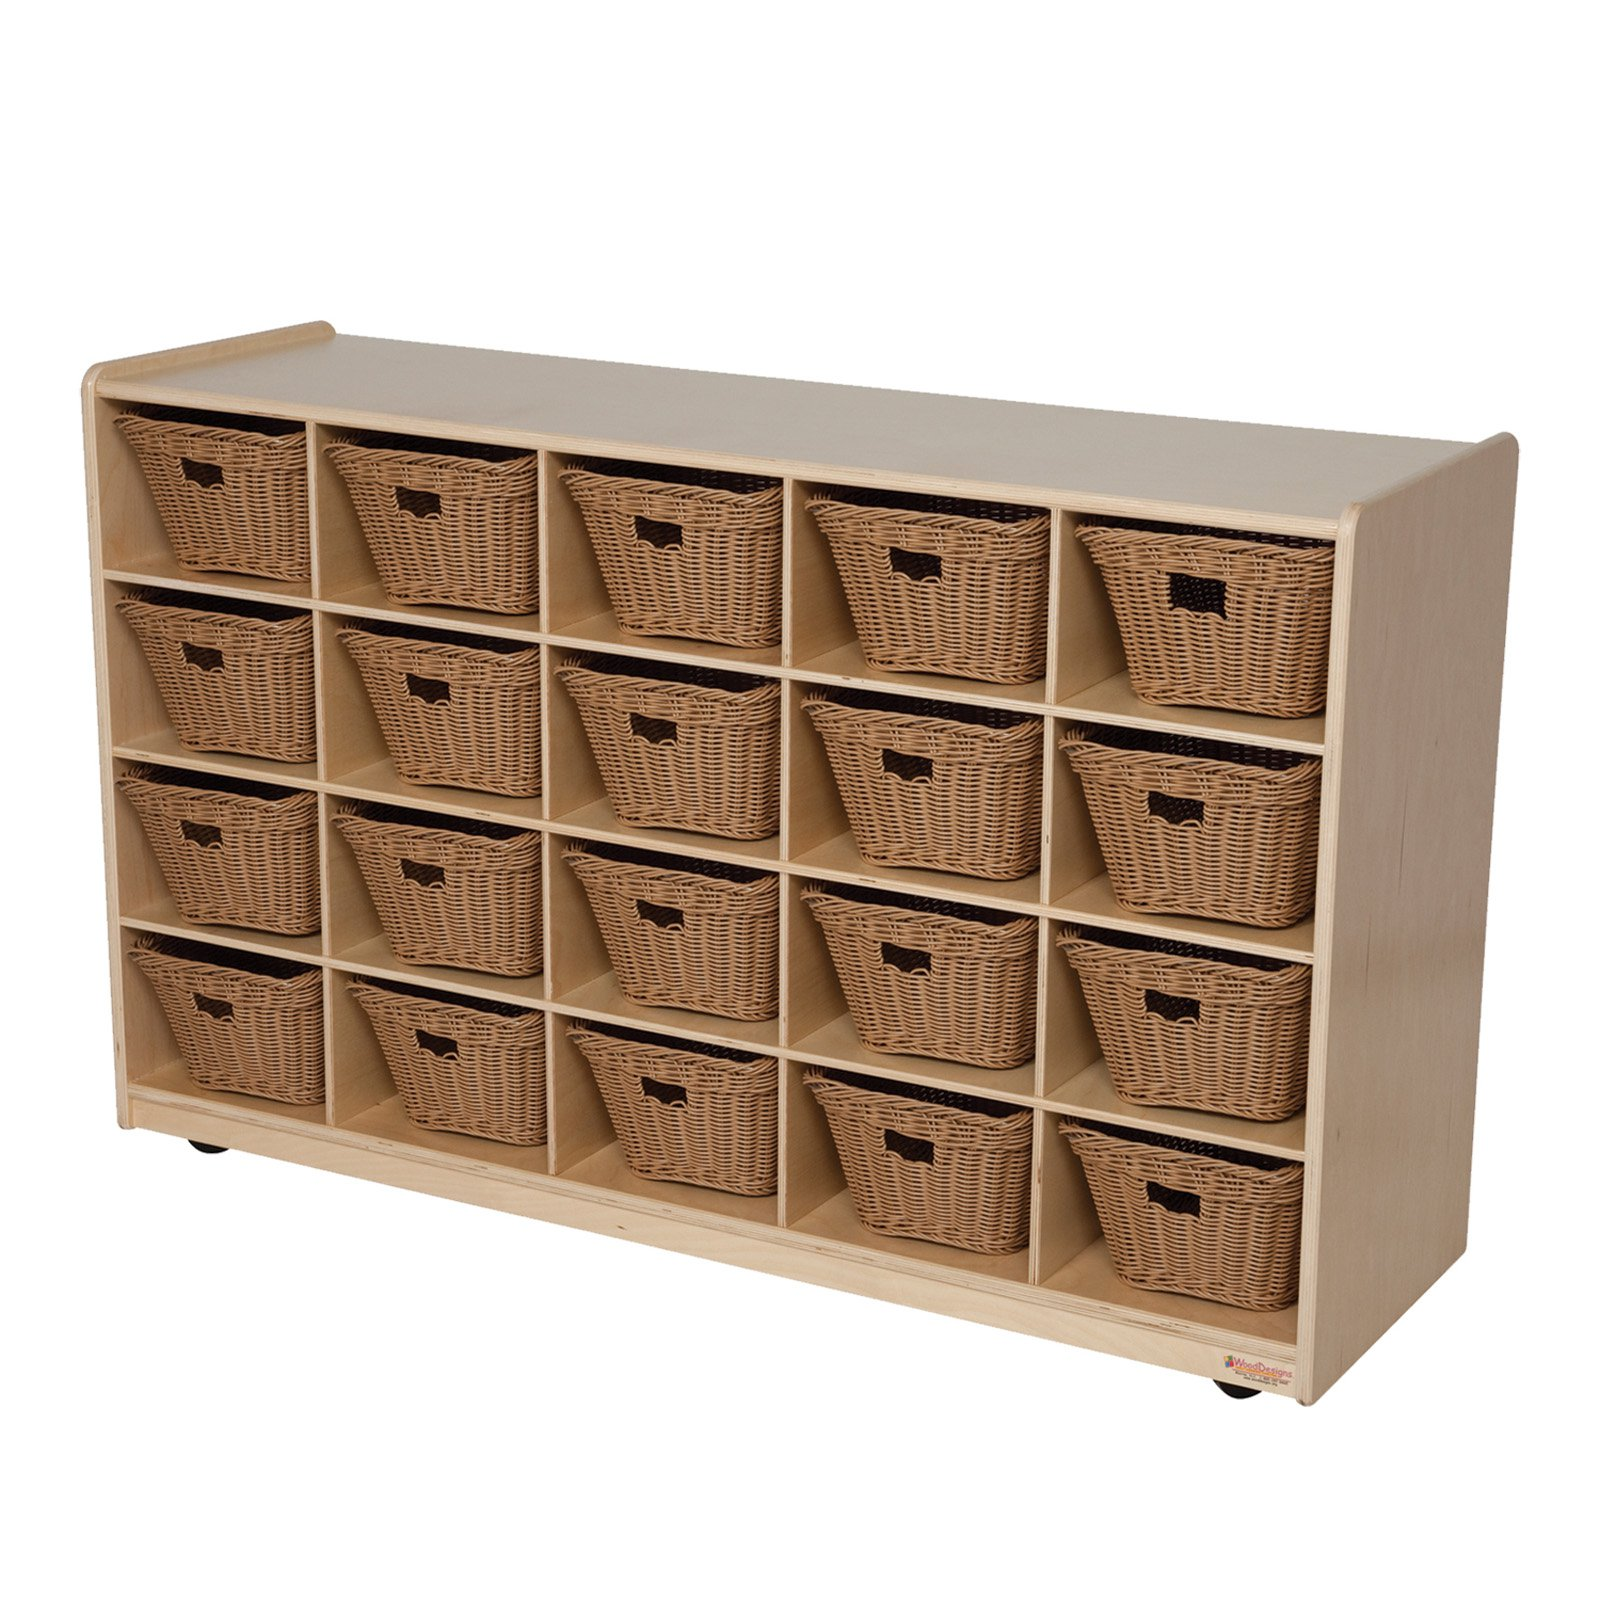 Wood Designs 20 Tray Storage with Baskets